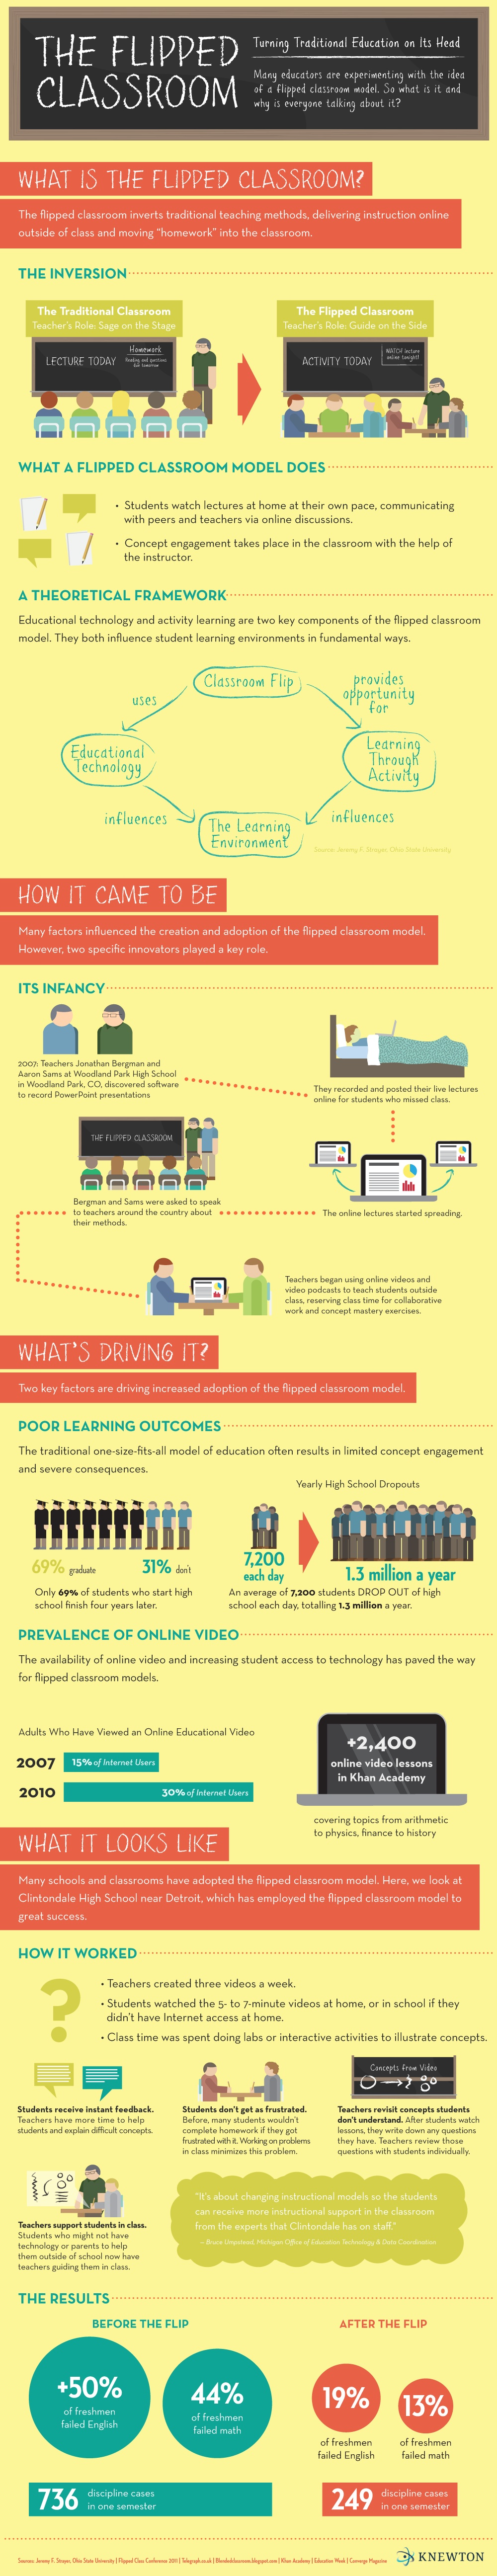 Food for thought: The Flipped Classroom